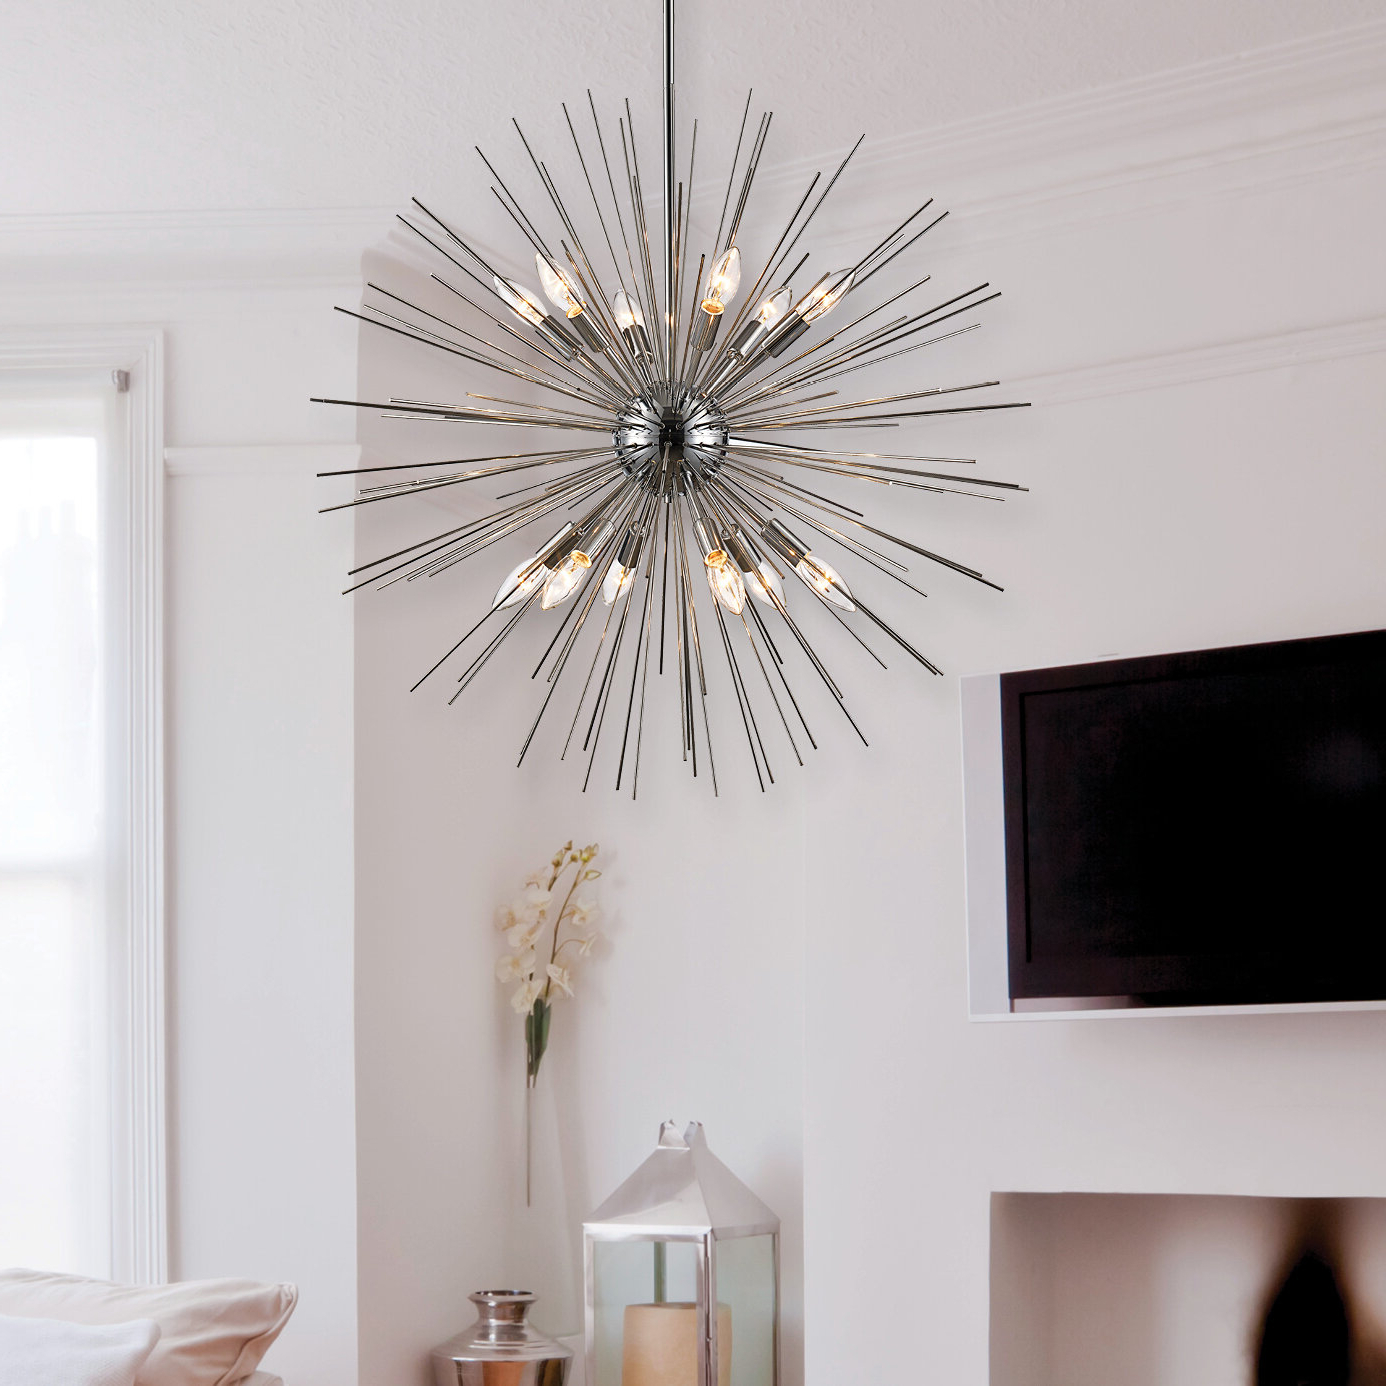 Antonie 12 Light Sputnik Chandelier Regarding Latest Corona 12 Light Sputnik Chandeliers (View 6 of 25)